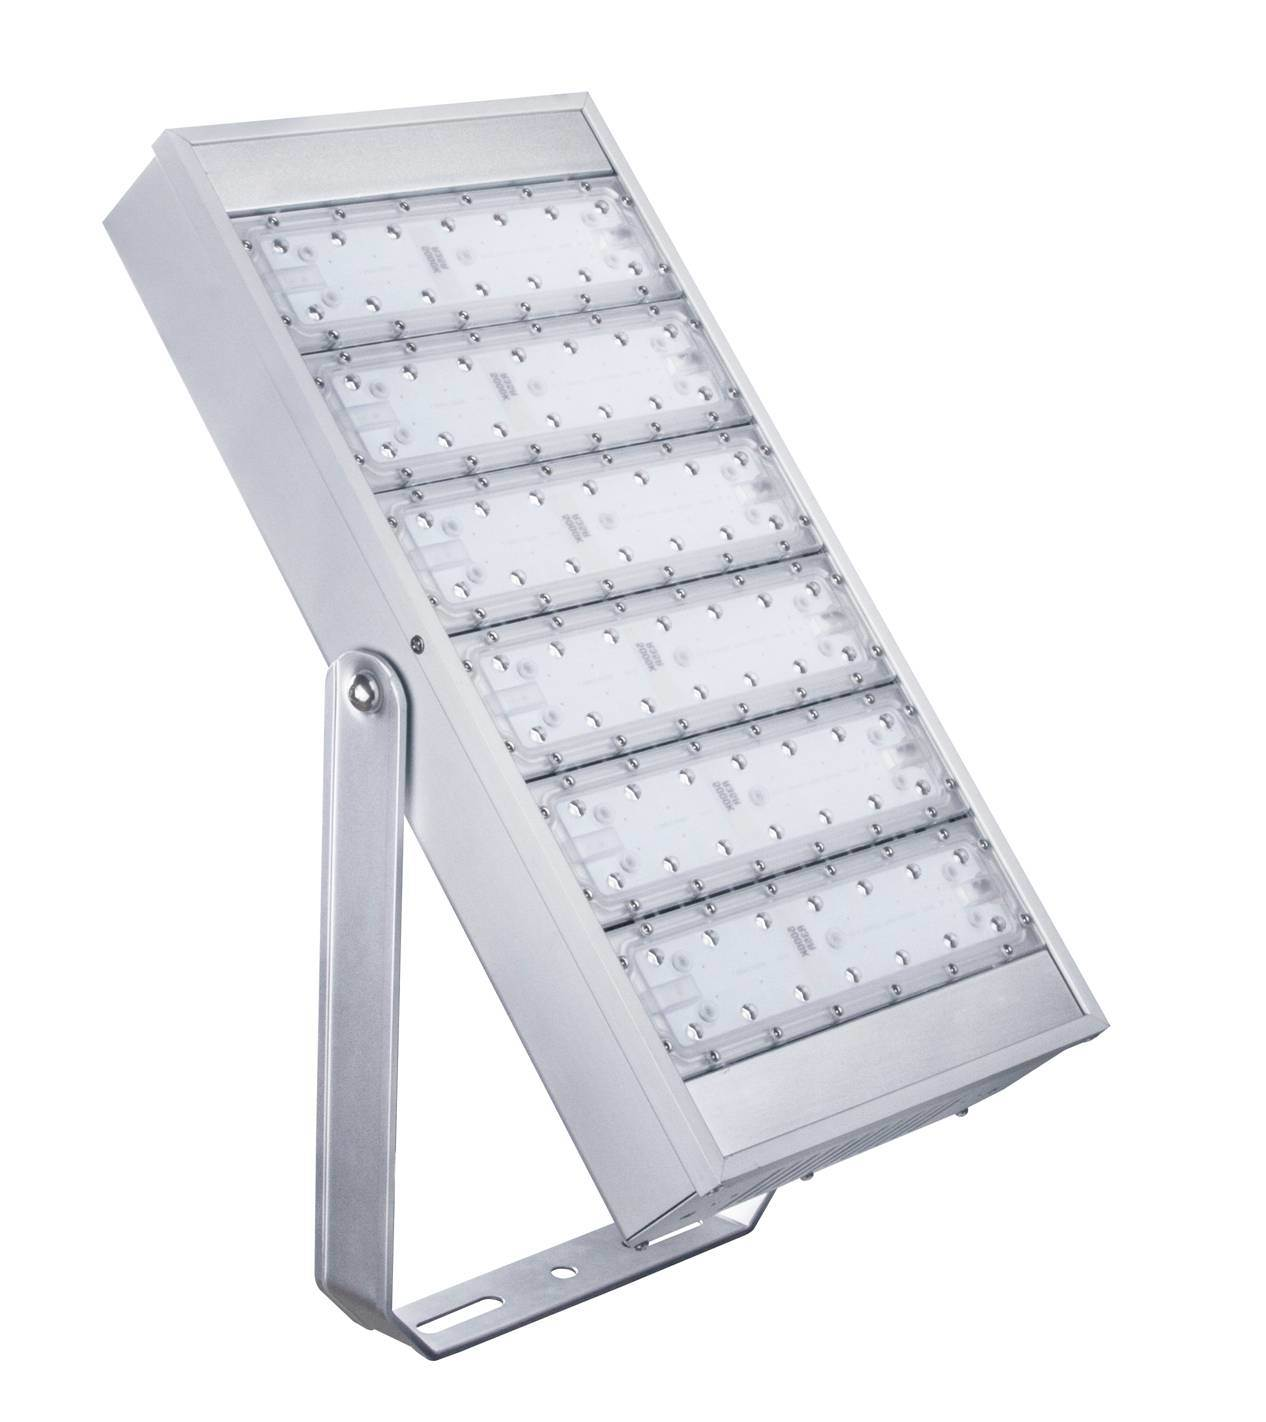 UL Dlc 40W to 1000W High Power LED Floodlight for Sport Field Lighting